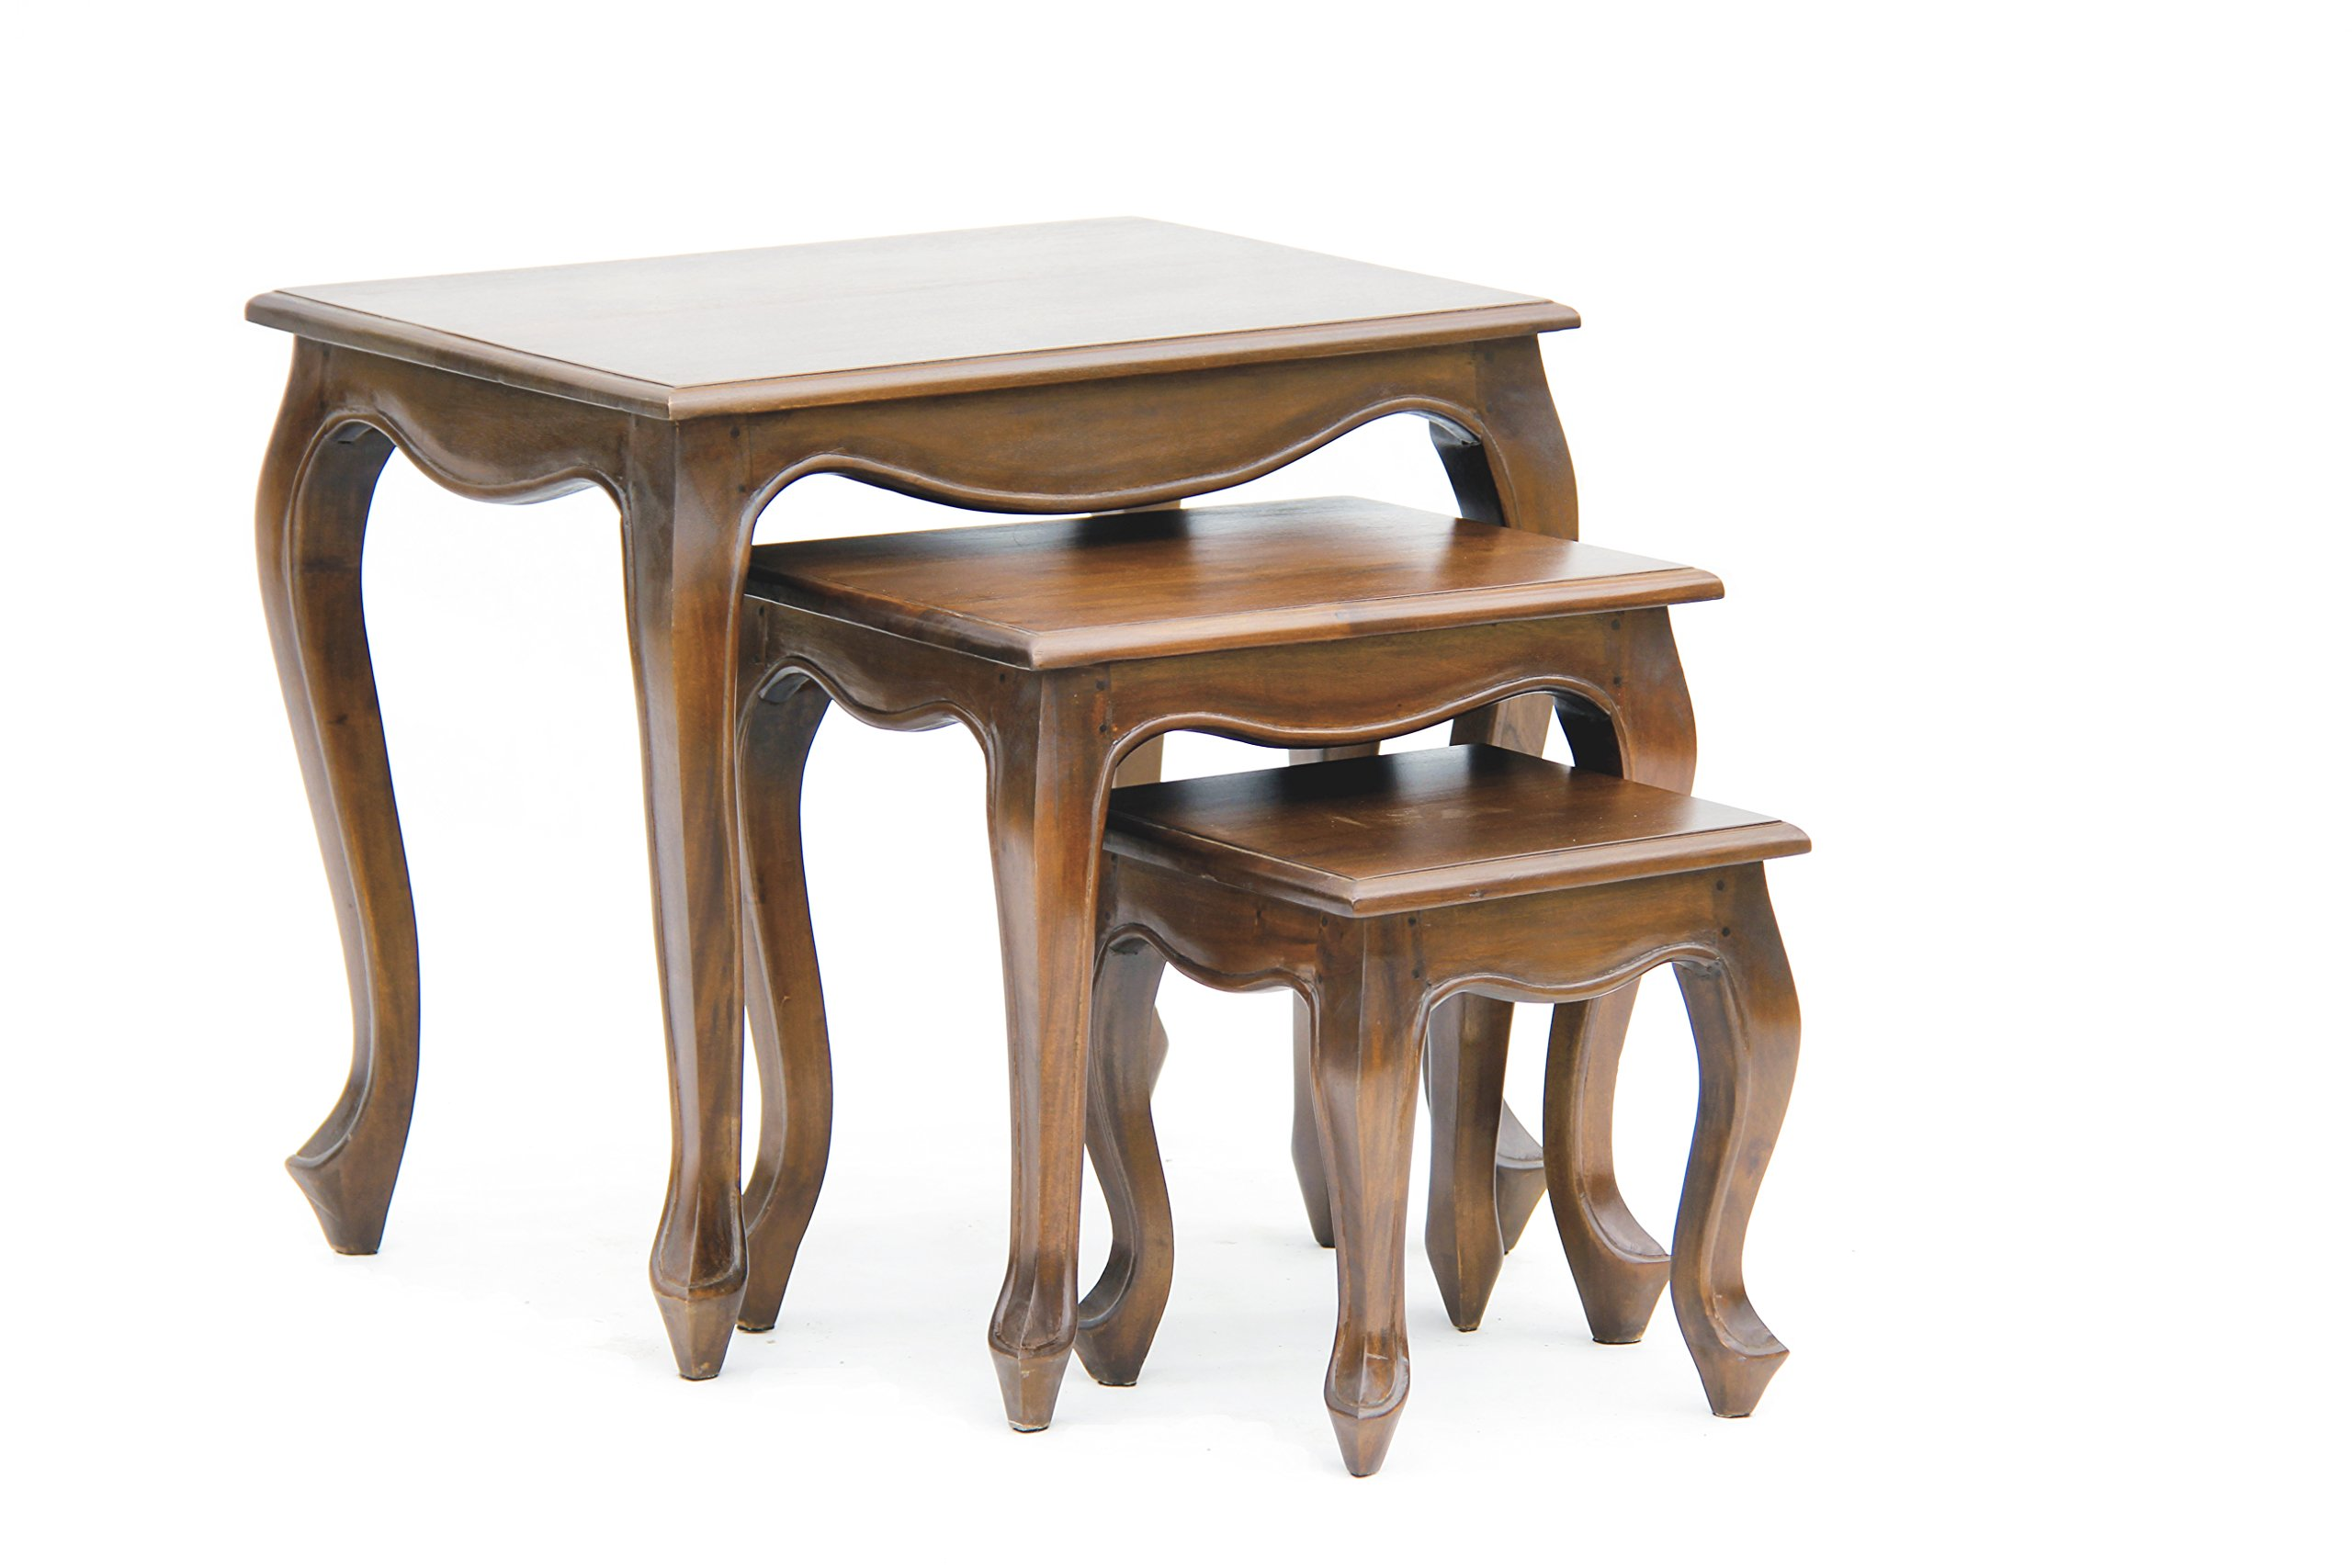 NES Furniture NES Fine Handcrafted Furniture Solid Mahogany Wood Queen Anne Nesting Tables - 24'', Light Pecan by NES Furniture